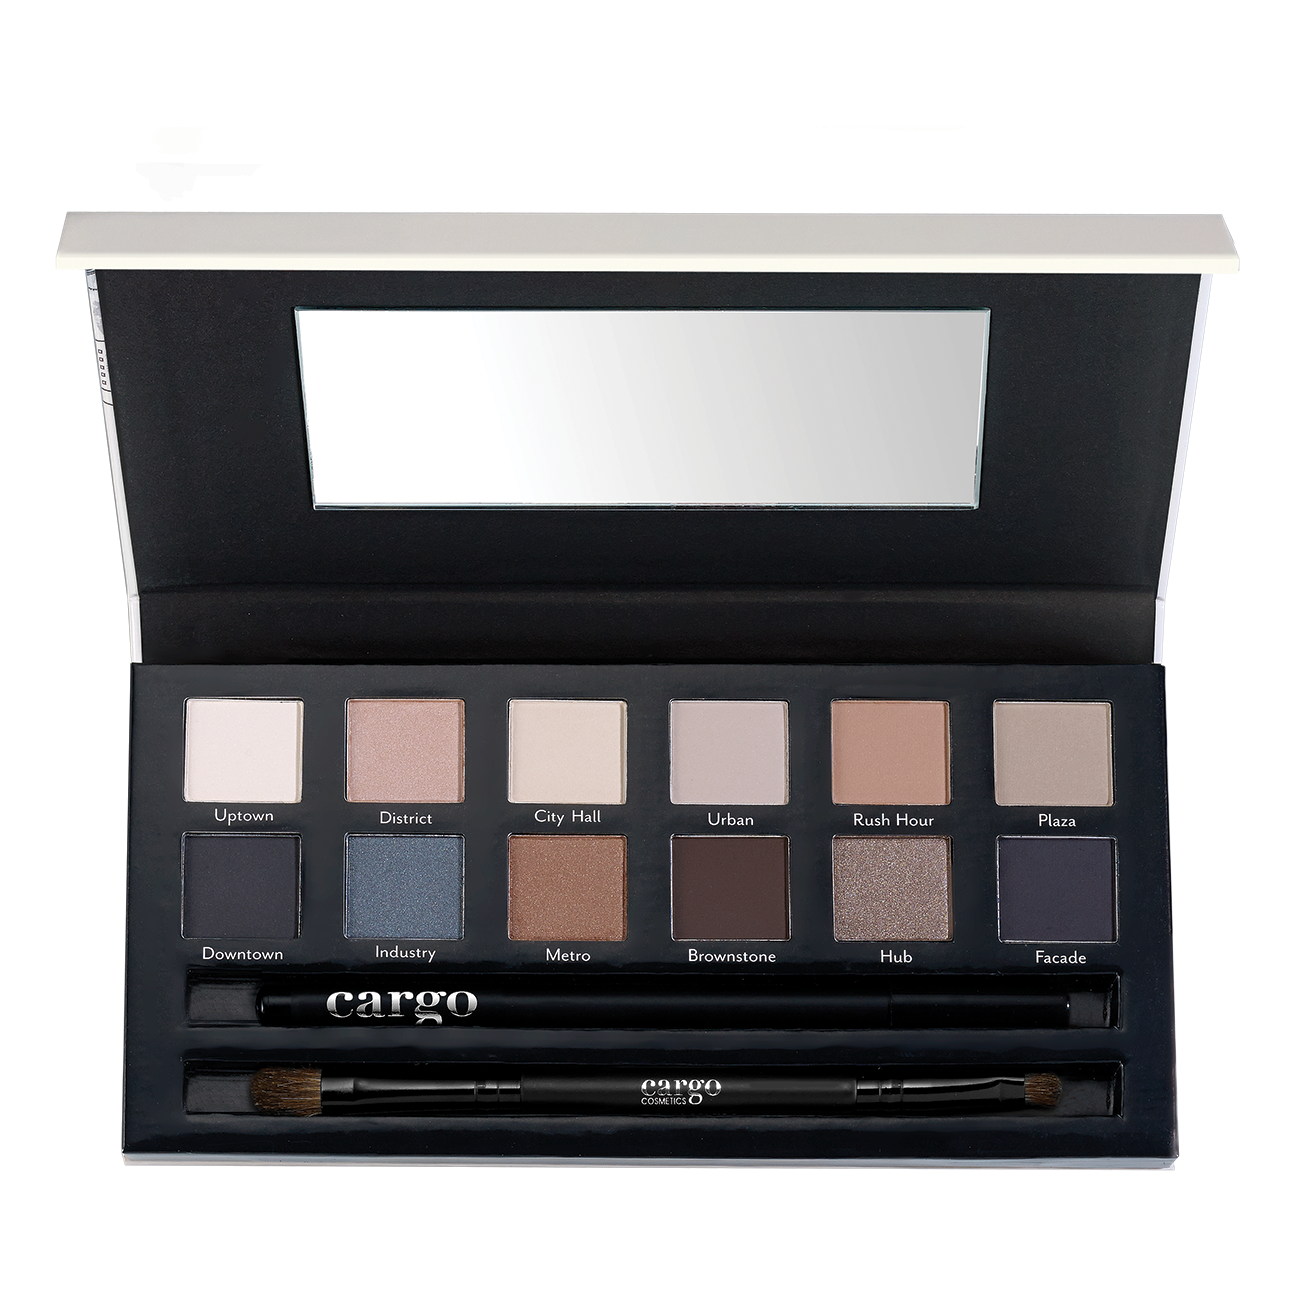 The Essentials Eye Shadow Palette